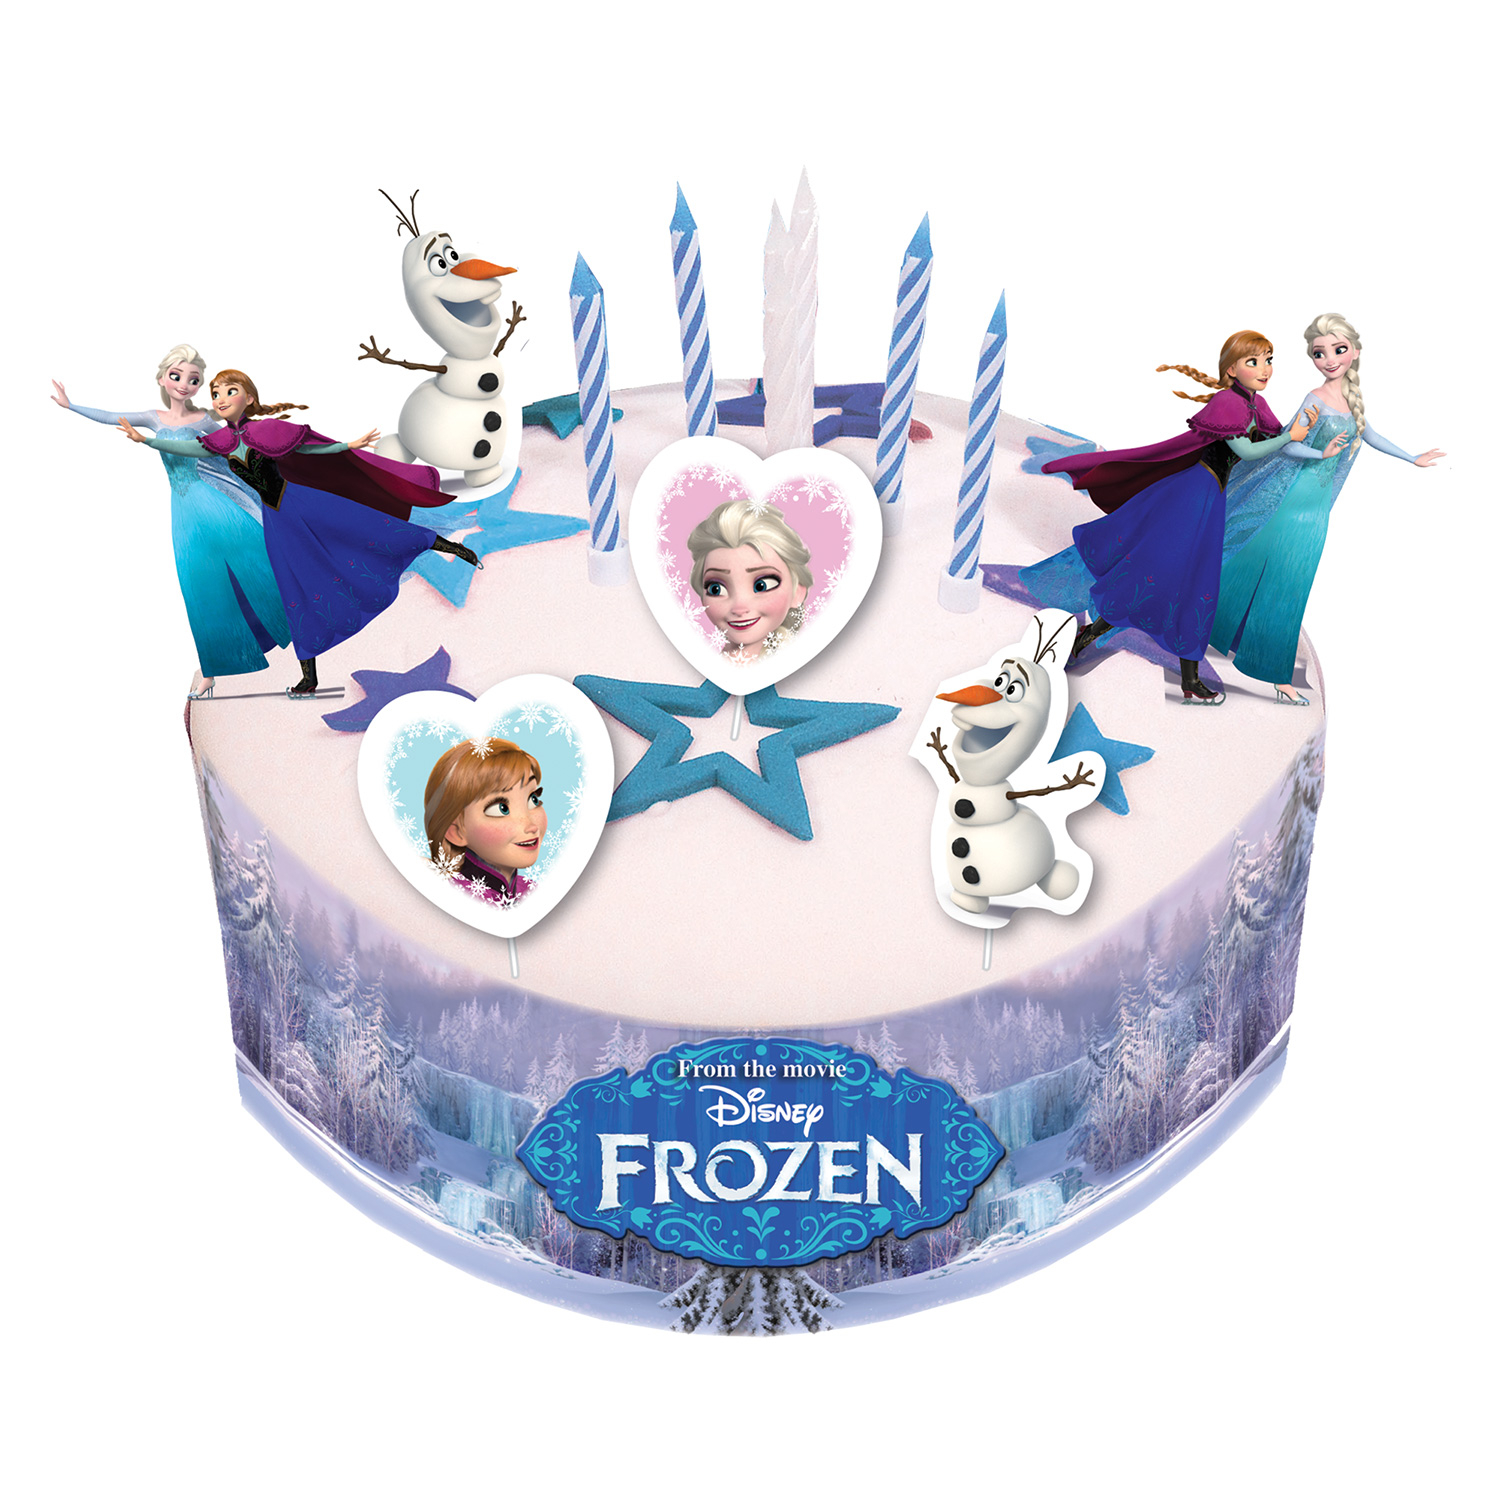 Disney Frozen Cake Decorating Sets 6 PKG19 Amscan International